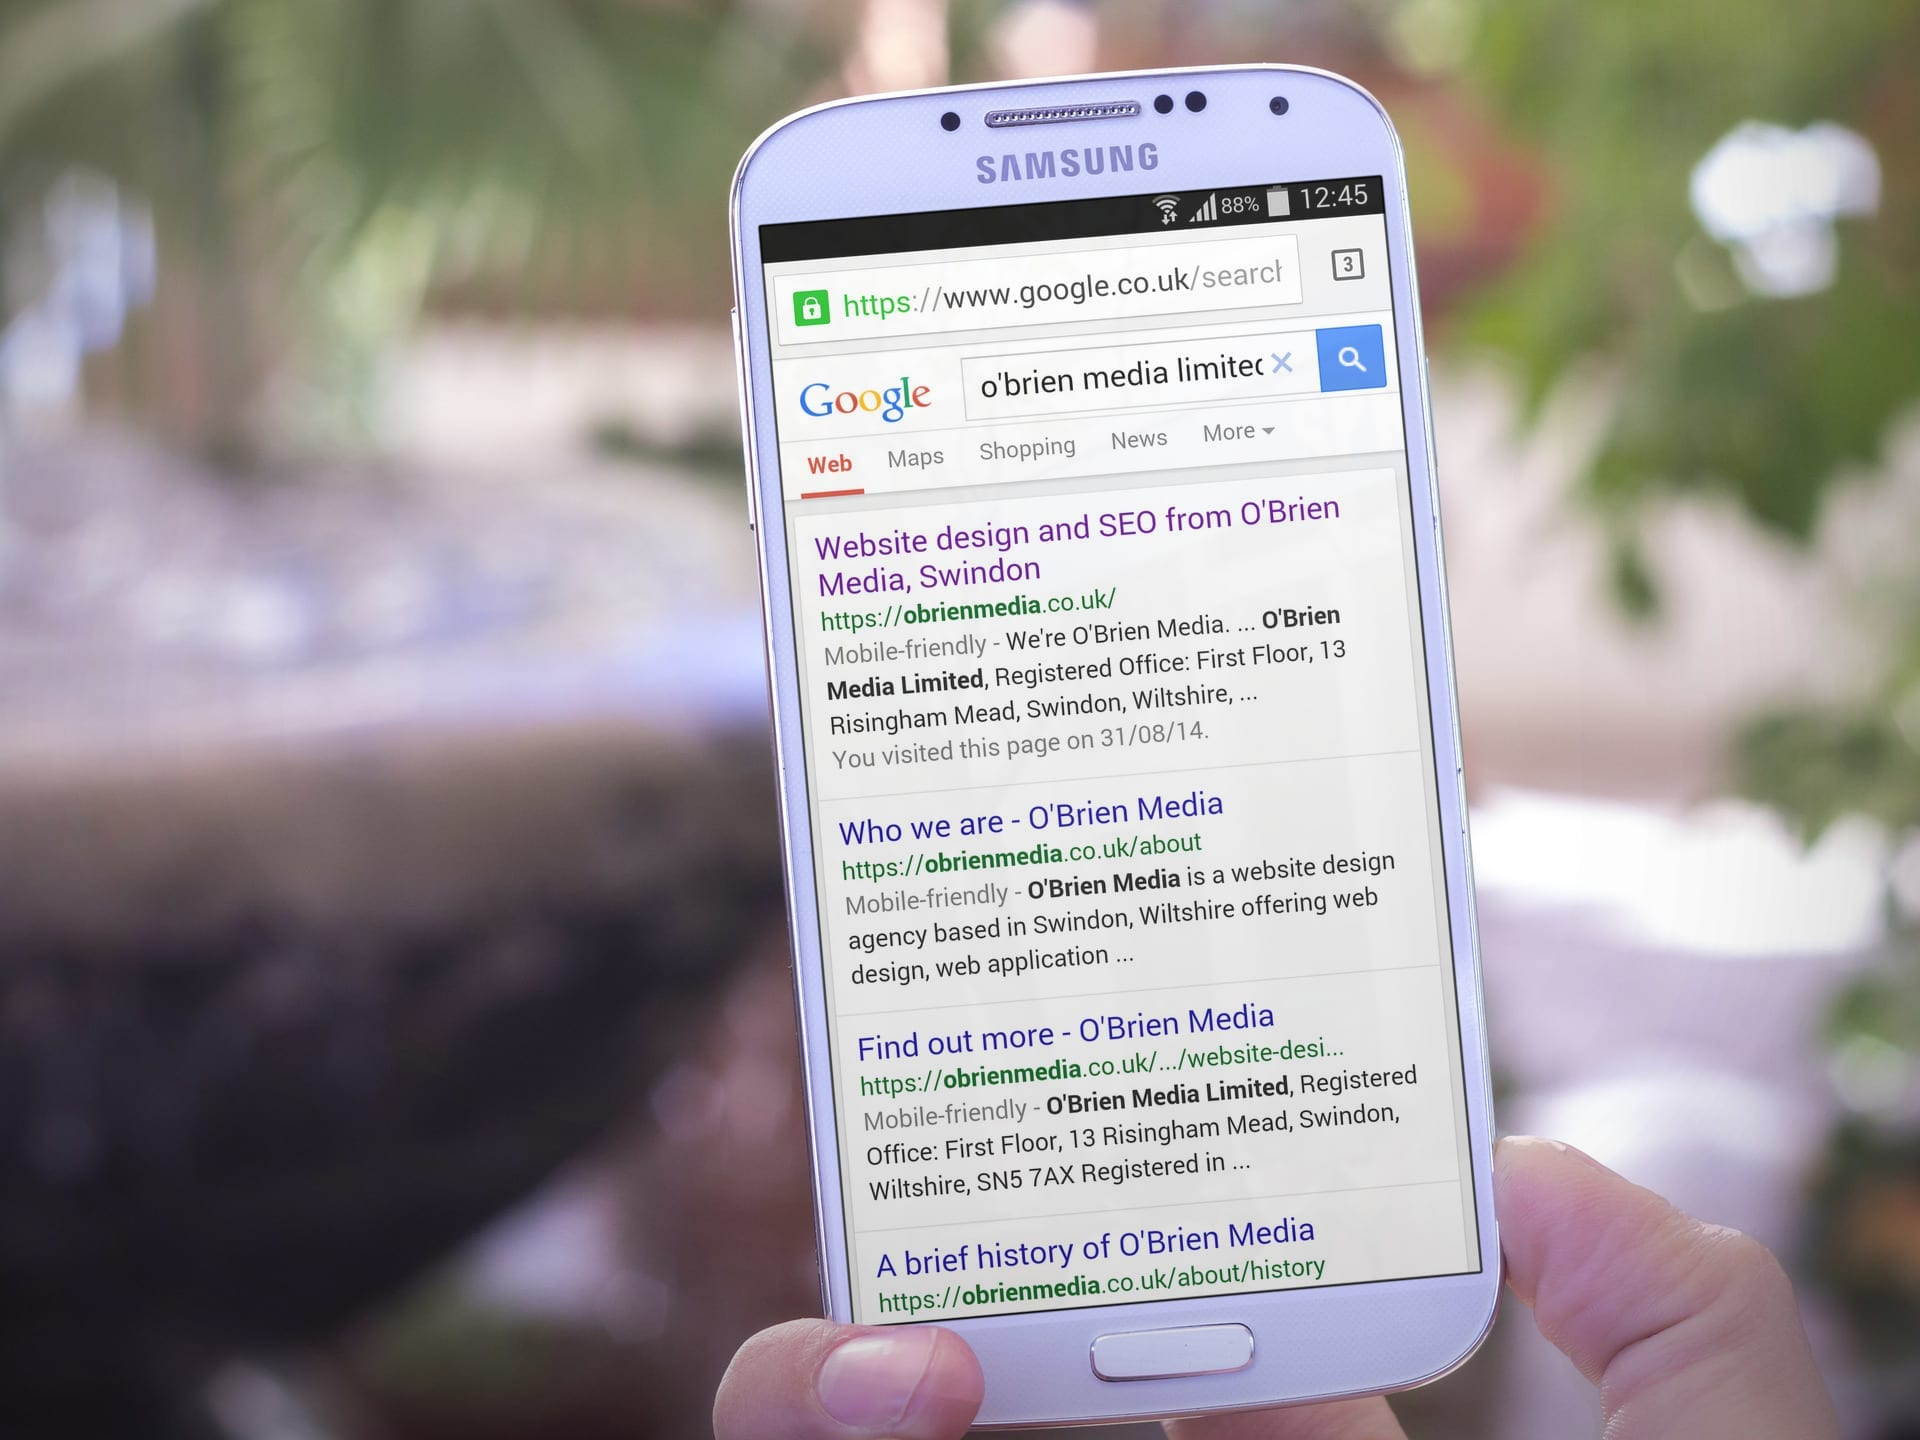 google-now-labels-mobile-friendly-websites-in-search-results.jpg